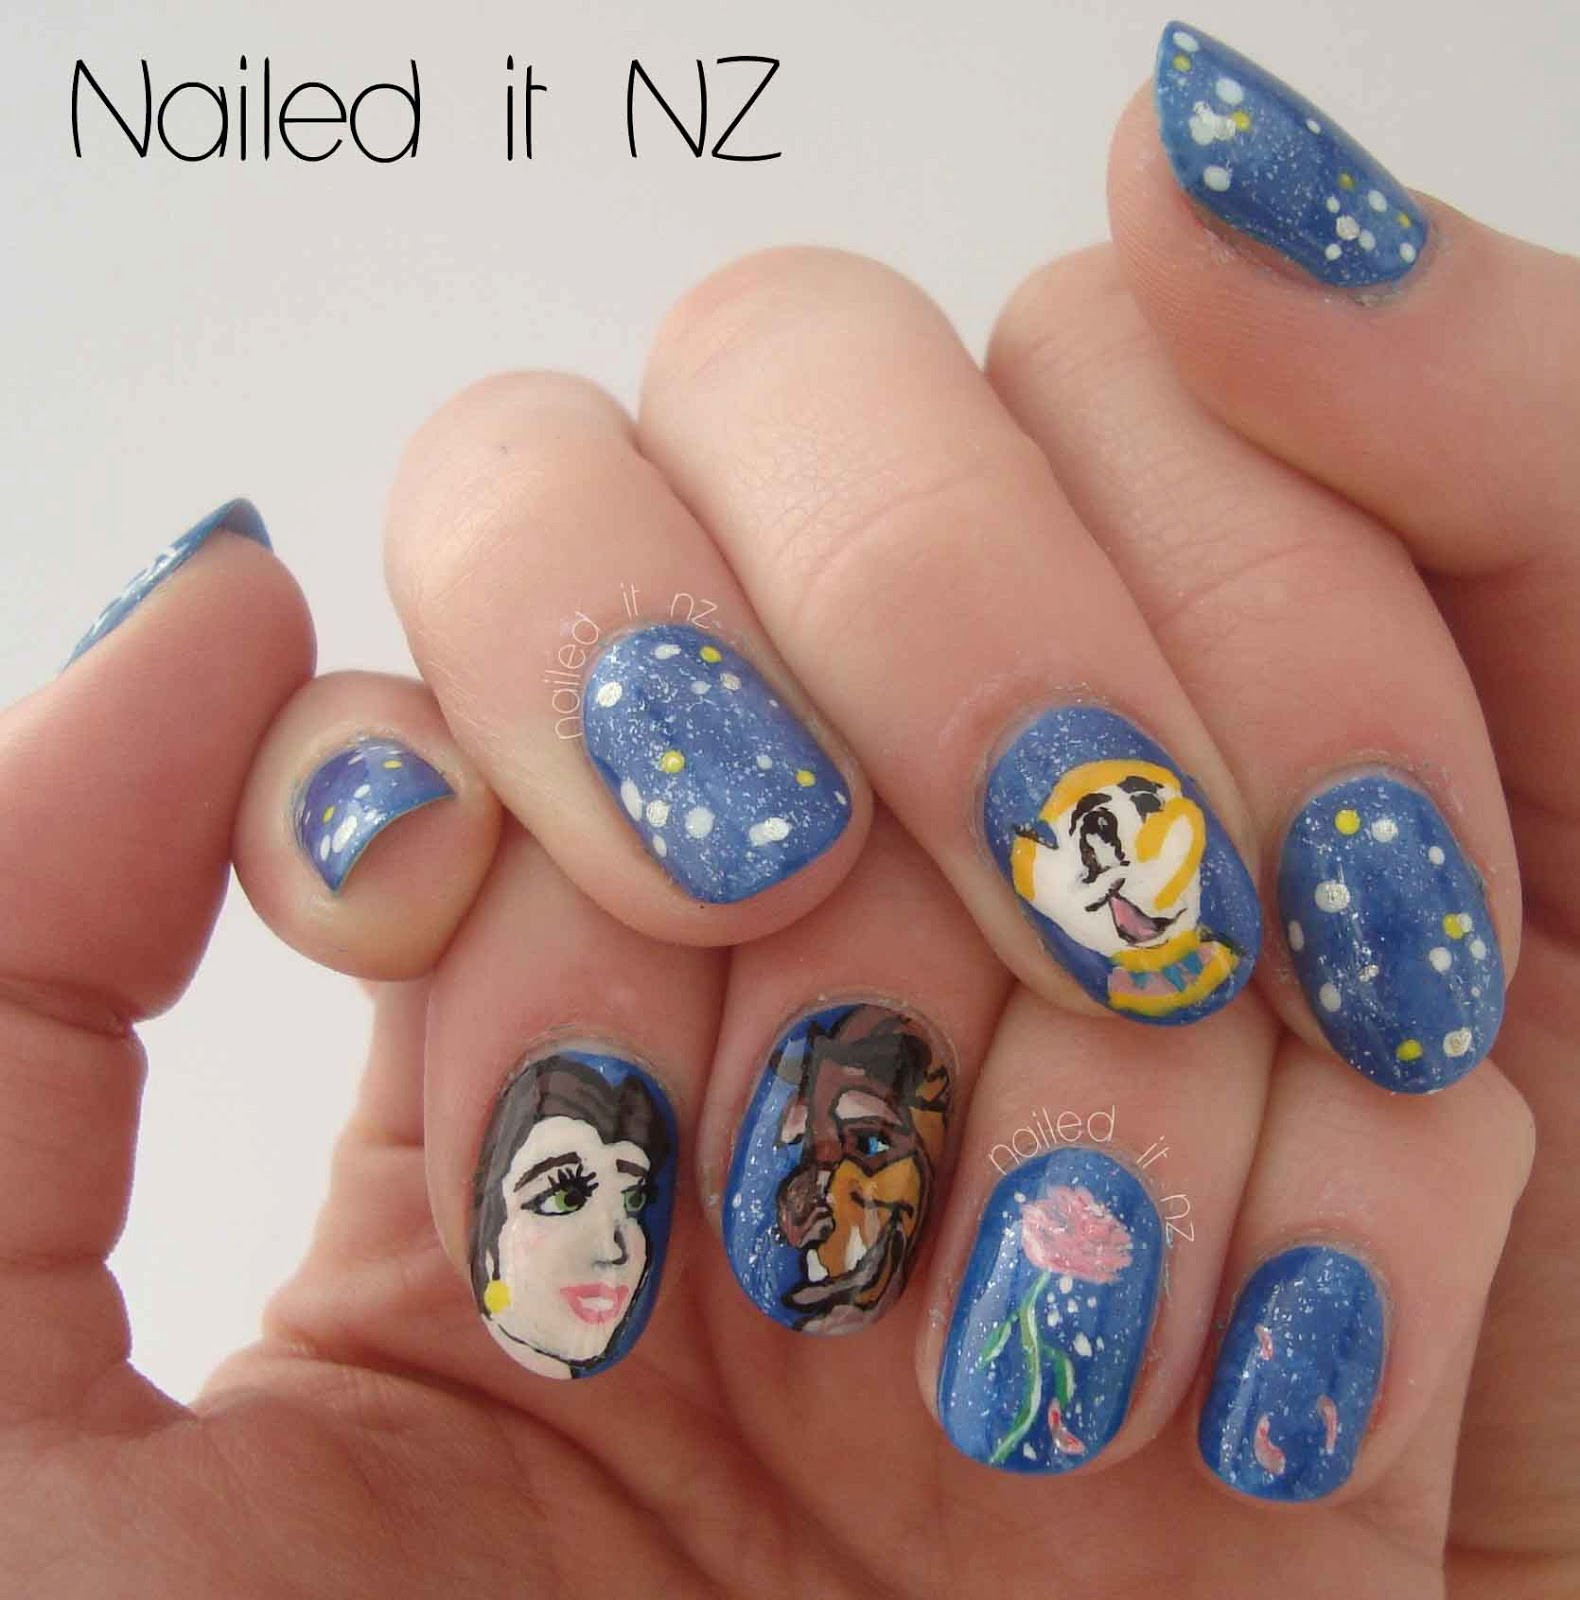 Disney Nail Art: Disney Nail Art #2: Beauty And The Beast